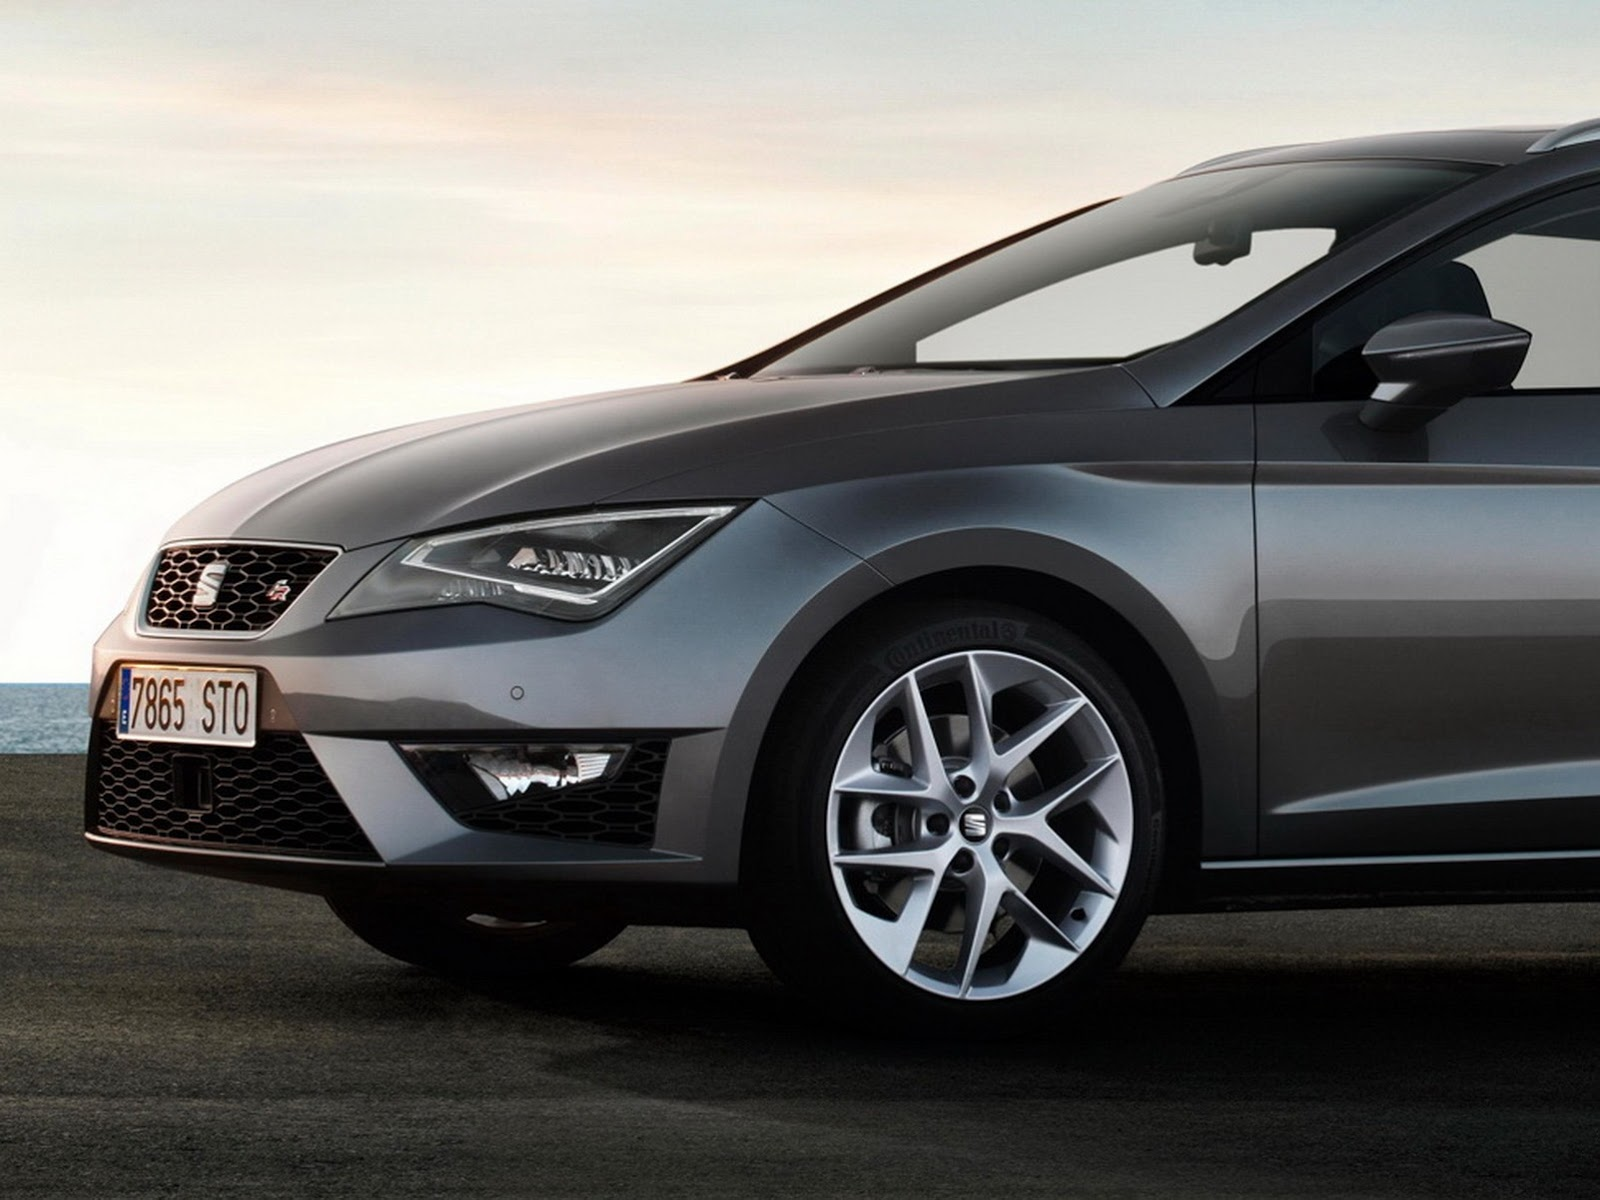 2014 seat leon st estate first official photos autoevolution. Black Bedroom Furniture Sets. Home Design Ideas